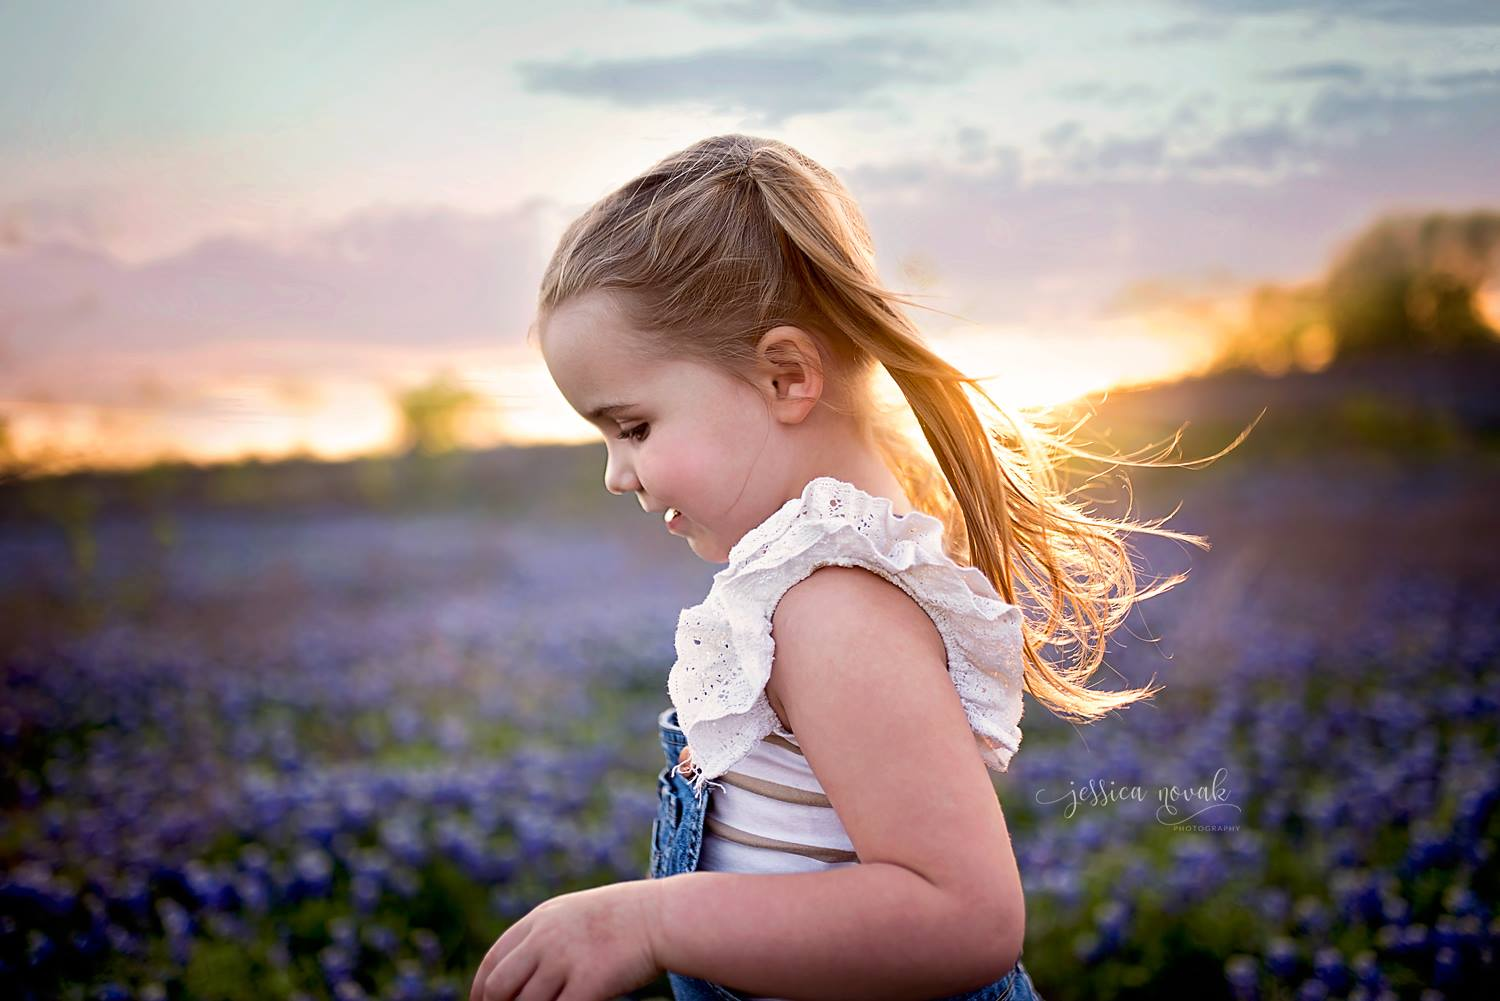 Girl in blue bonnet field at sunset, Jessica Novak Photography Daily Fan Favorite